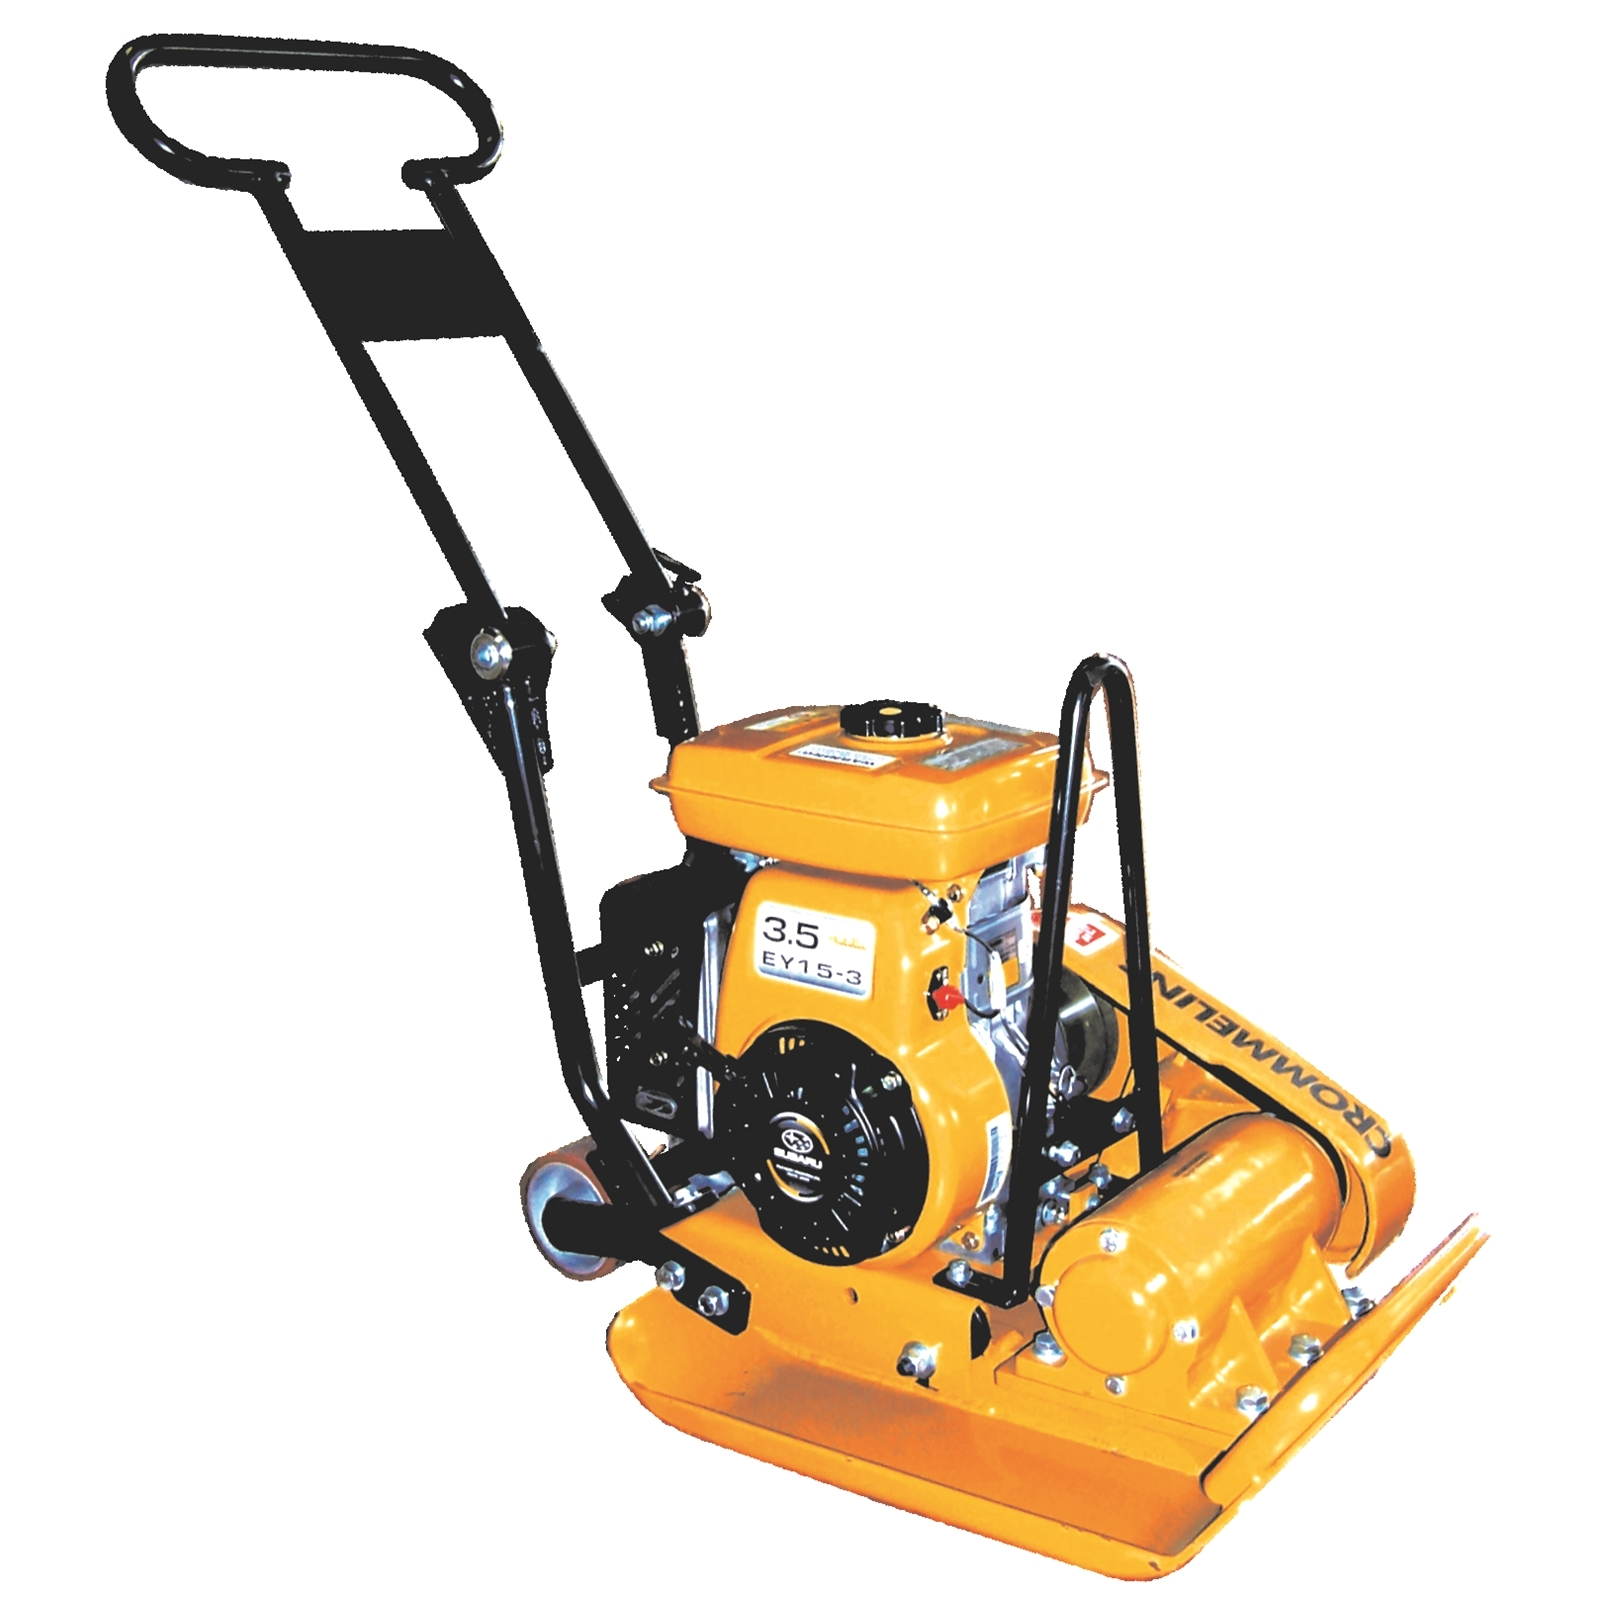 For Hire: Small Compactor